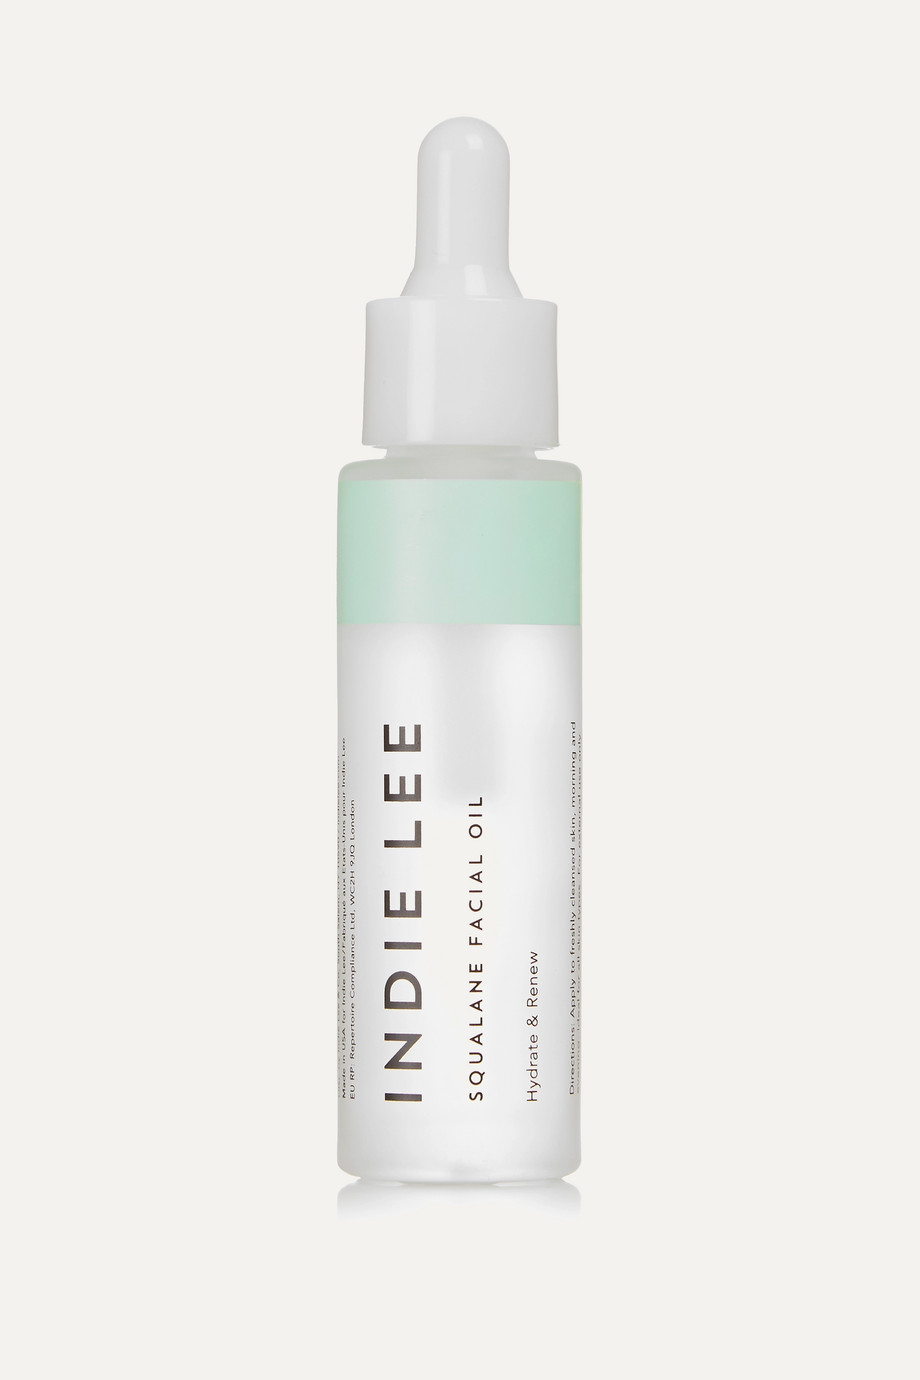 Indie Lee Squalane Facial Oil, 30ml